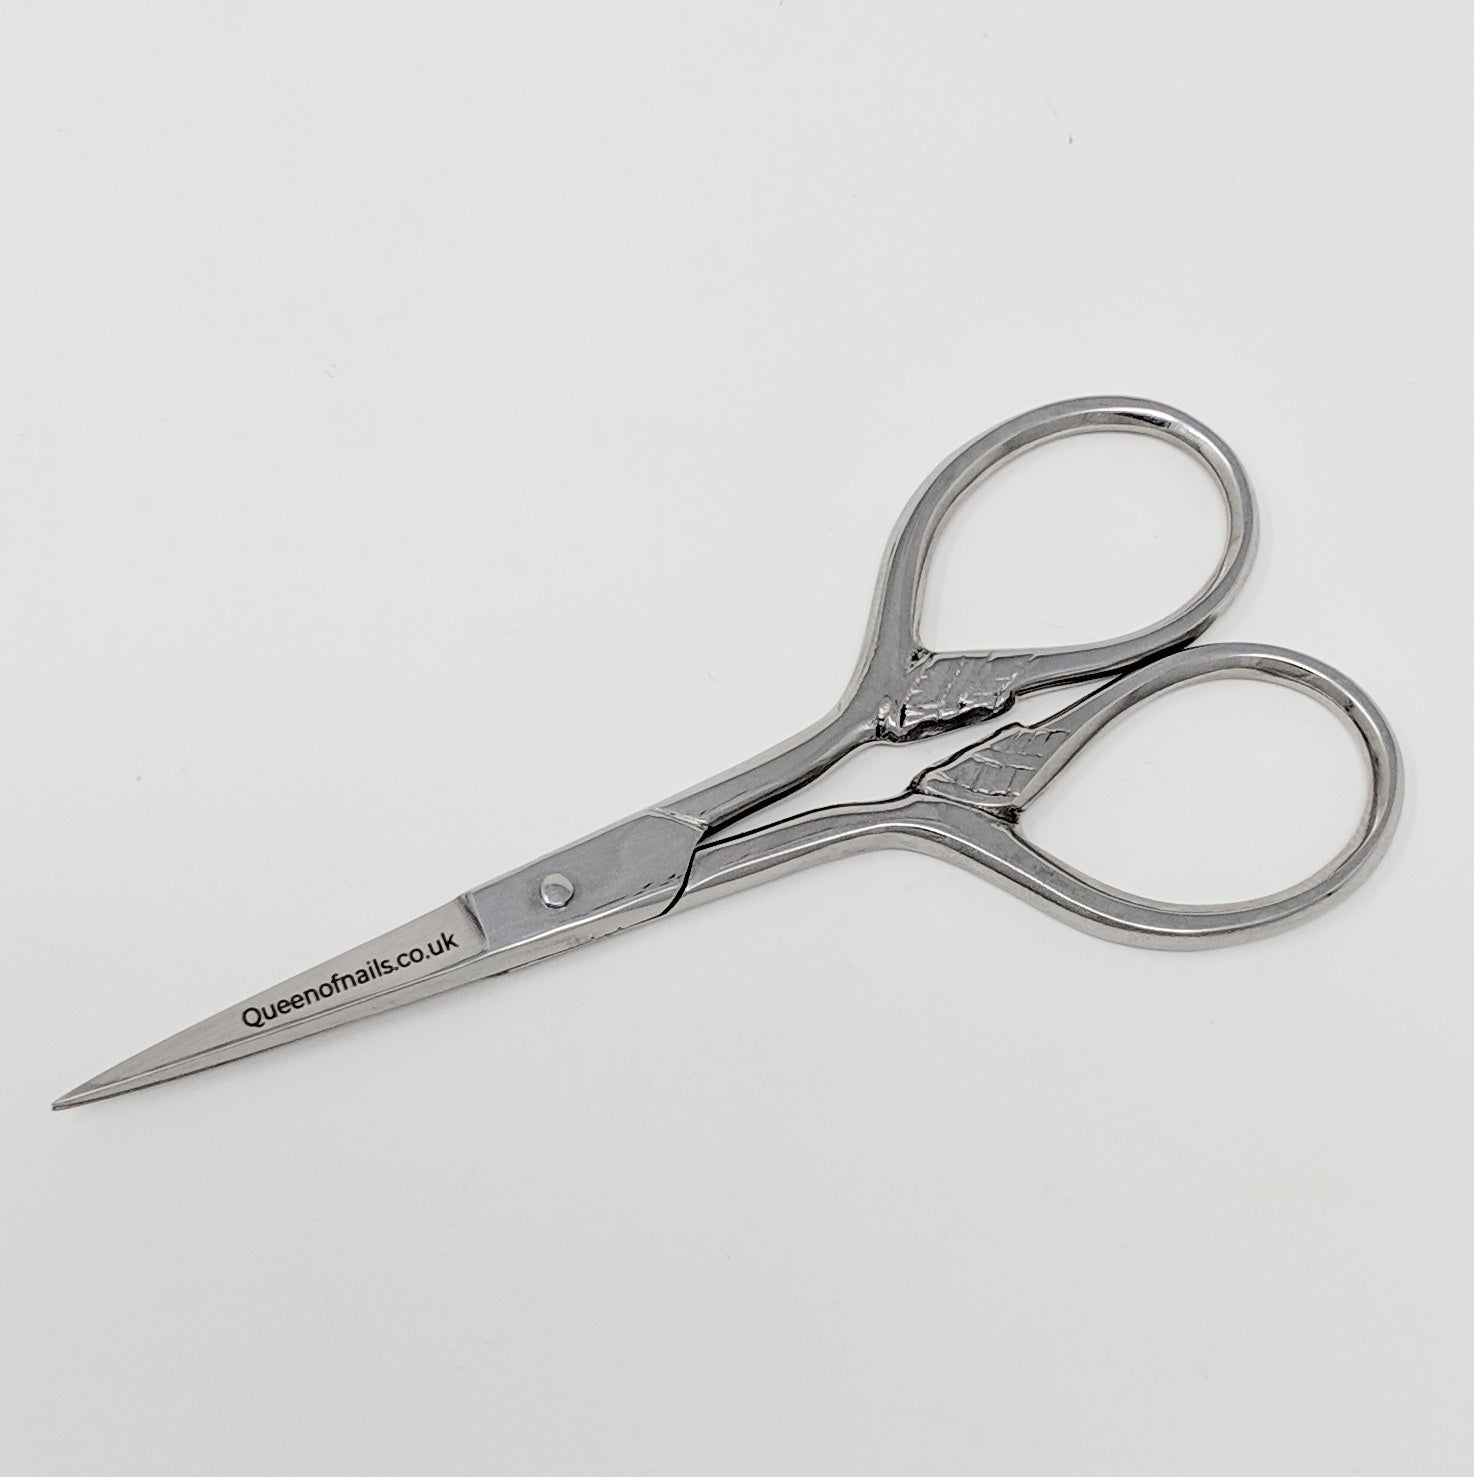 Simple-Scissors-UK-Wholesaler-Supplier-queenofnailscouk